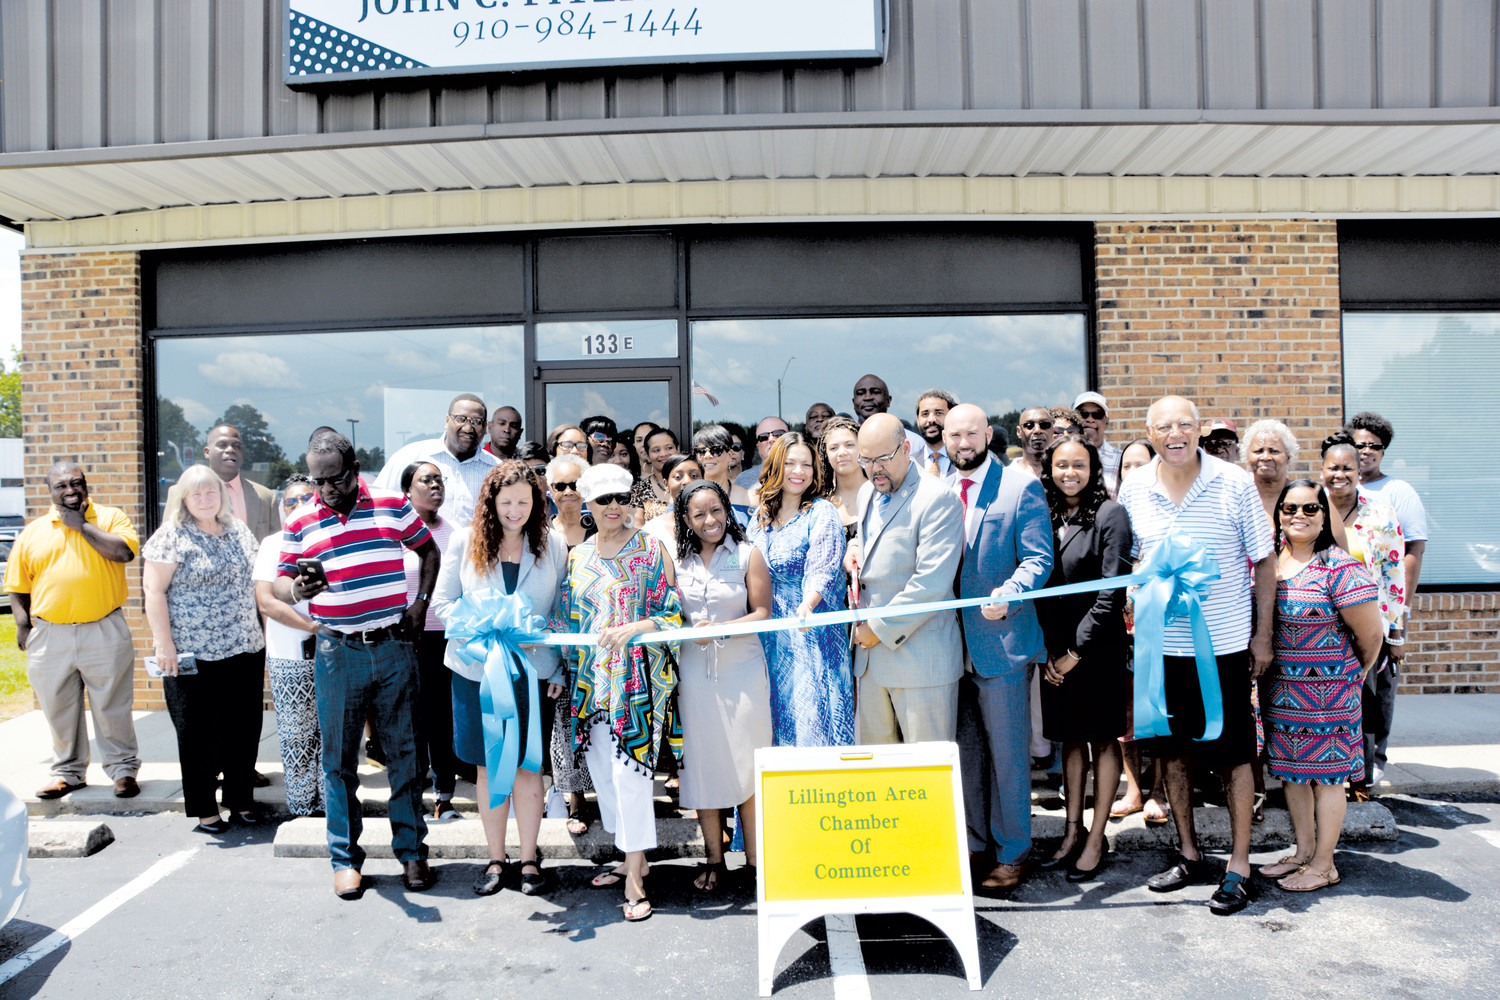 A large crowd came out last week for the ribbon cutting of the Fitzpatrick law firm in Lillington. Shown cutting the ribbon, in front, are Nichole Boone, Jake Fitzpatrick, Gerelene Goodman, Shatoria Parrish, Lolita Wynn, Pauline Fitzpatrick, John Fitpatrick Jr., Brennon Morton, Tenika Neely, John Fitzpatrick Sr., and Denise Williams.